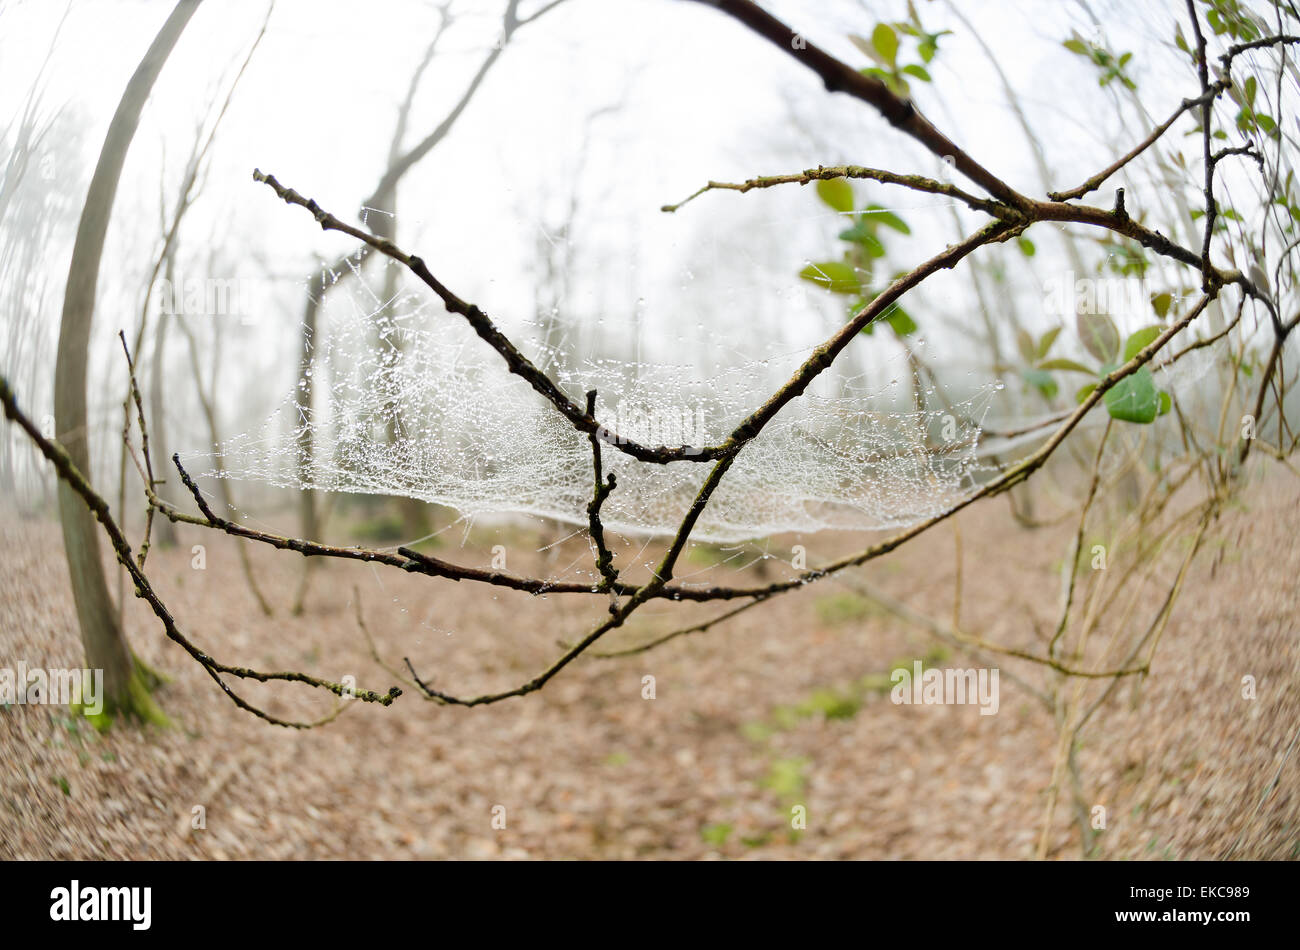 Dew caught on net of spiders web hiding woods and forest behind in thin mist - Stock Image